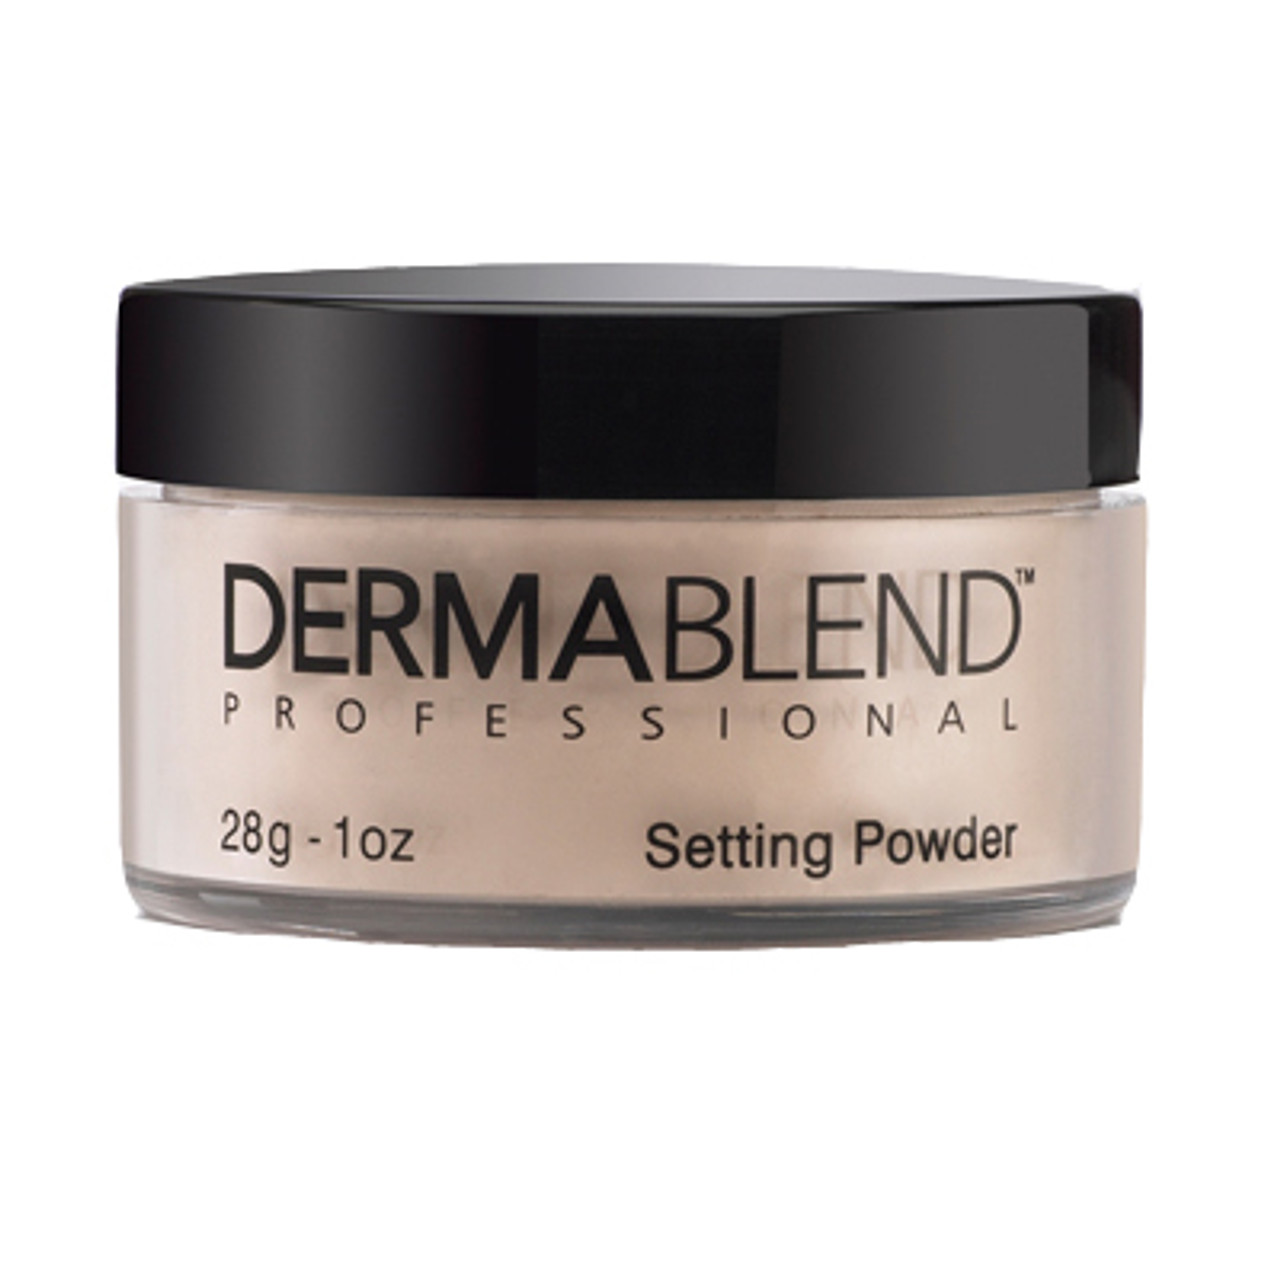 Cover Care Full Coverage Concealer by dermablend #18